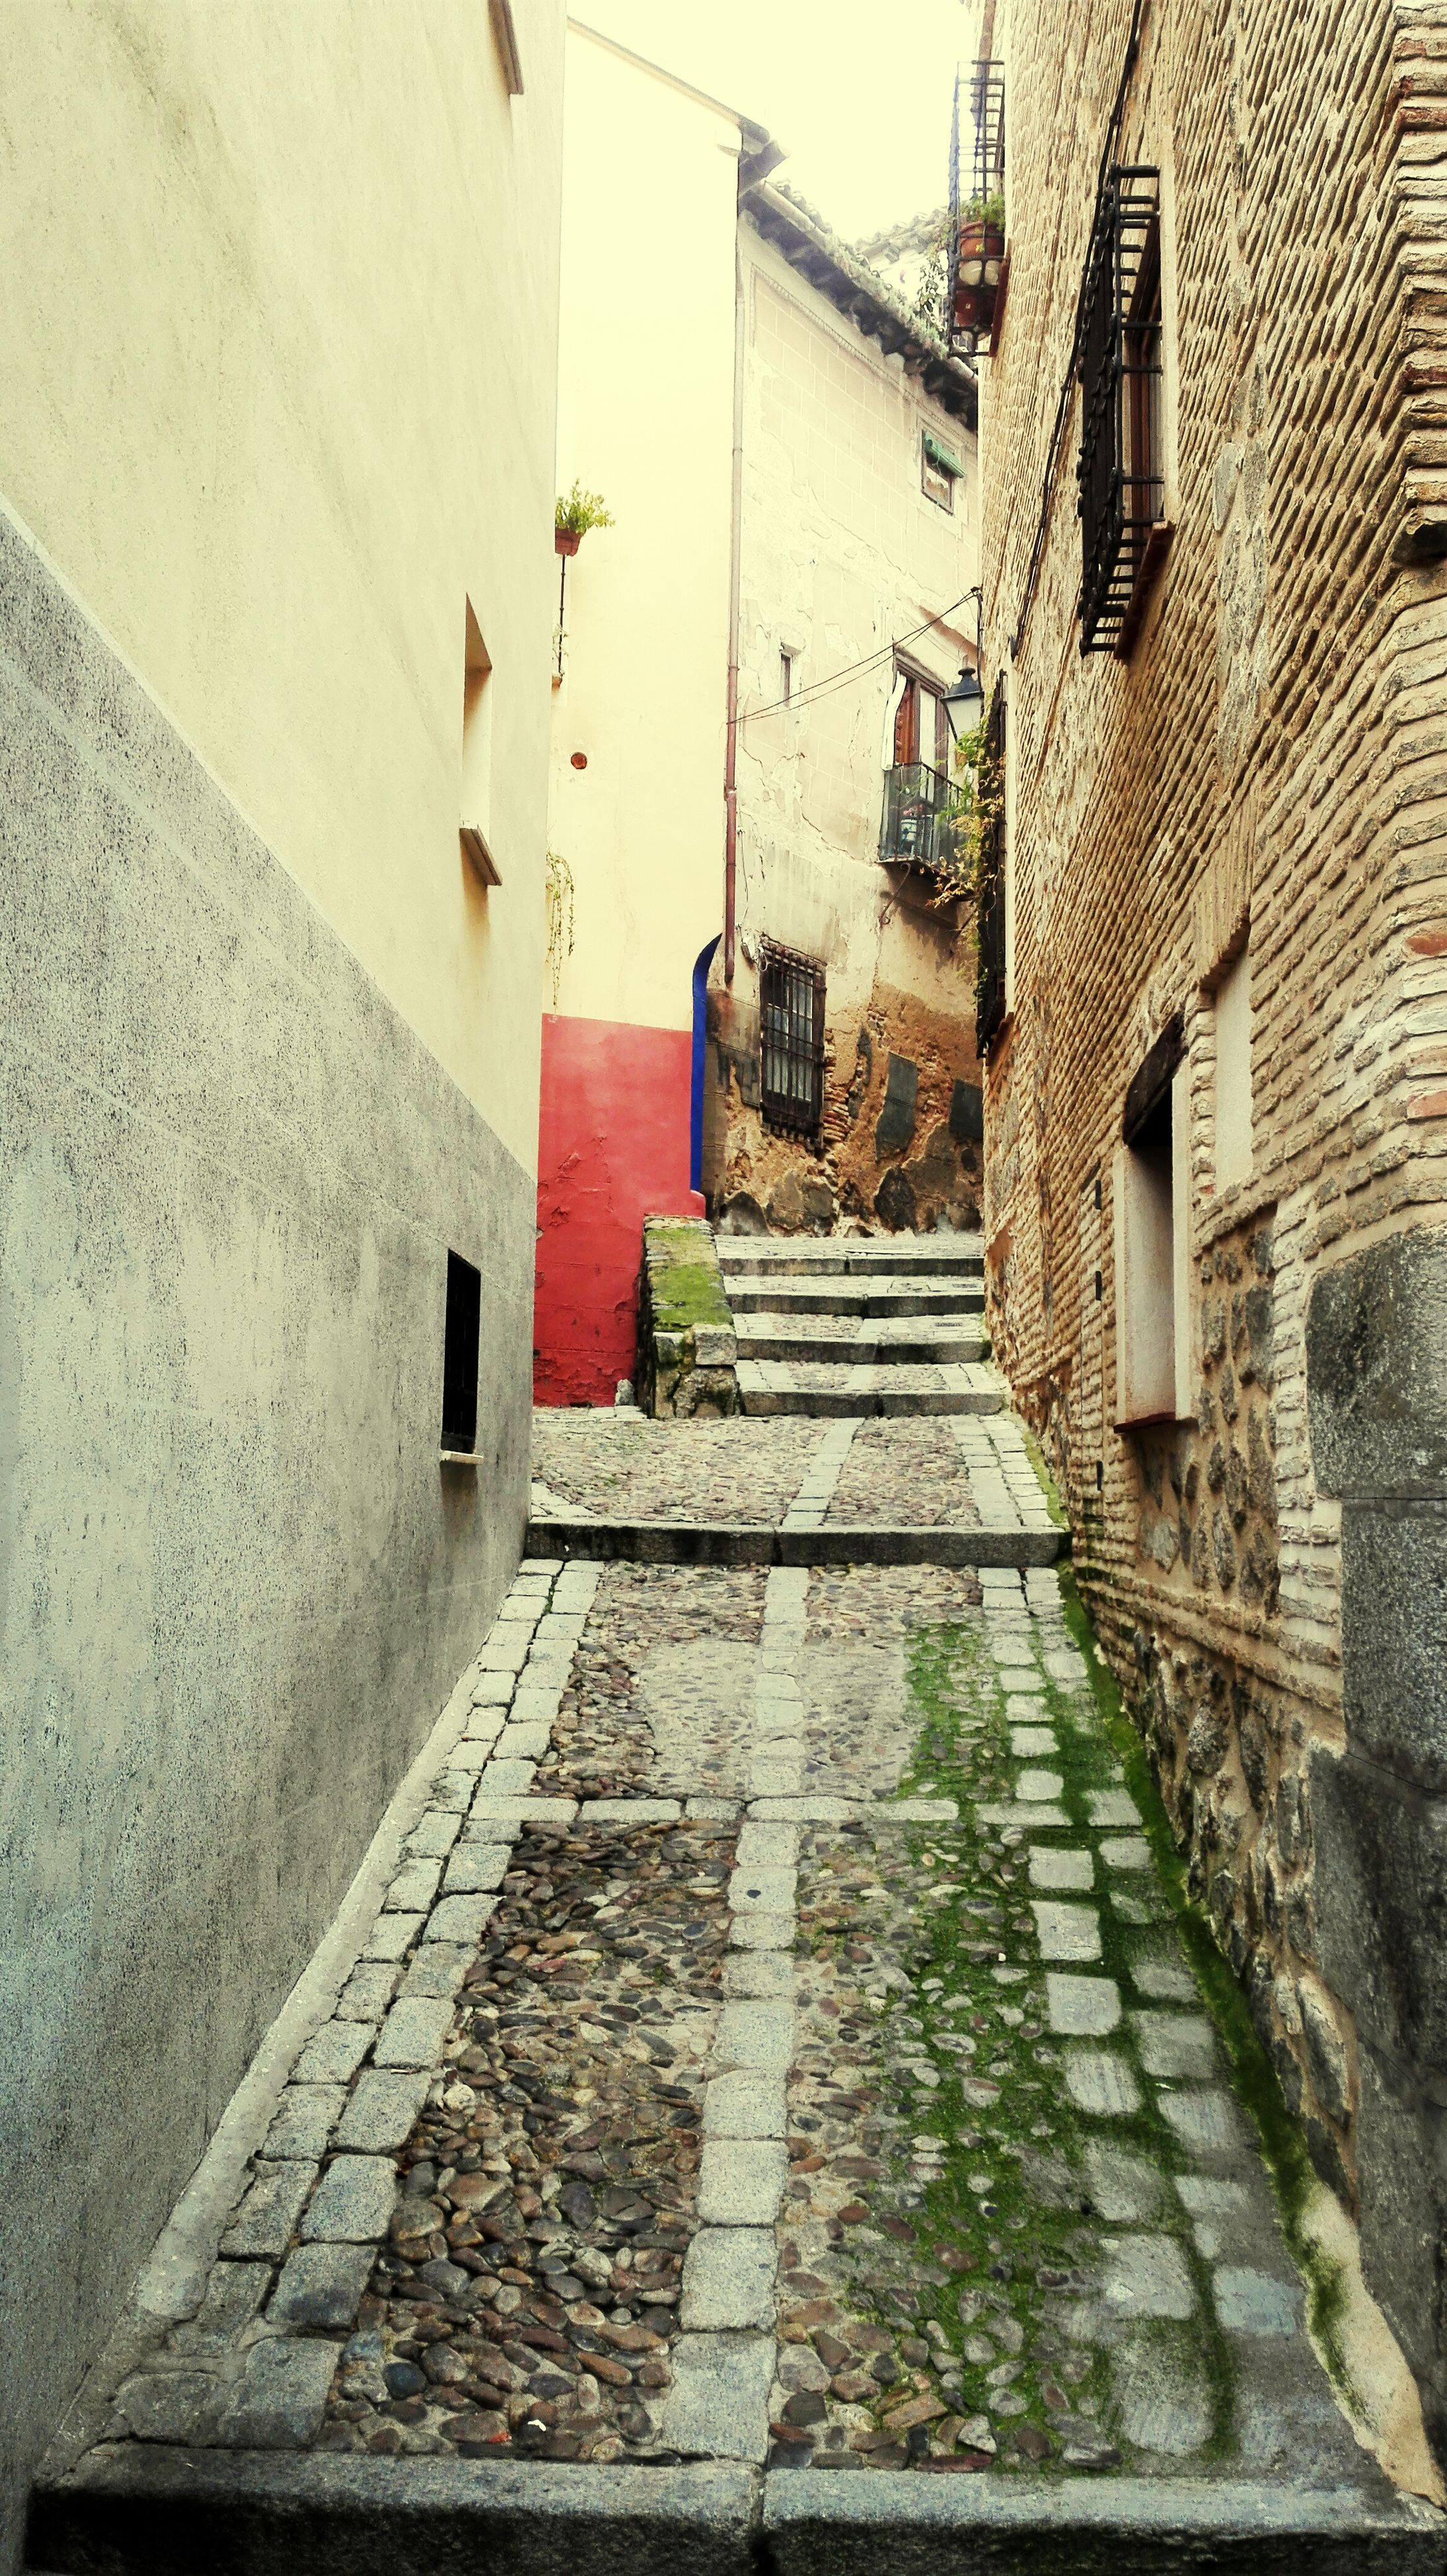 architecture, building exterior, built structure, the way forward, cobblestone, street, alley, residential structure, diminishing perspective, residential building, building, narrow, walkway, house, vanishing point, footpath, city, paving stone, pathway, wall - building feature